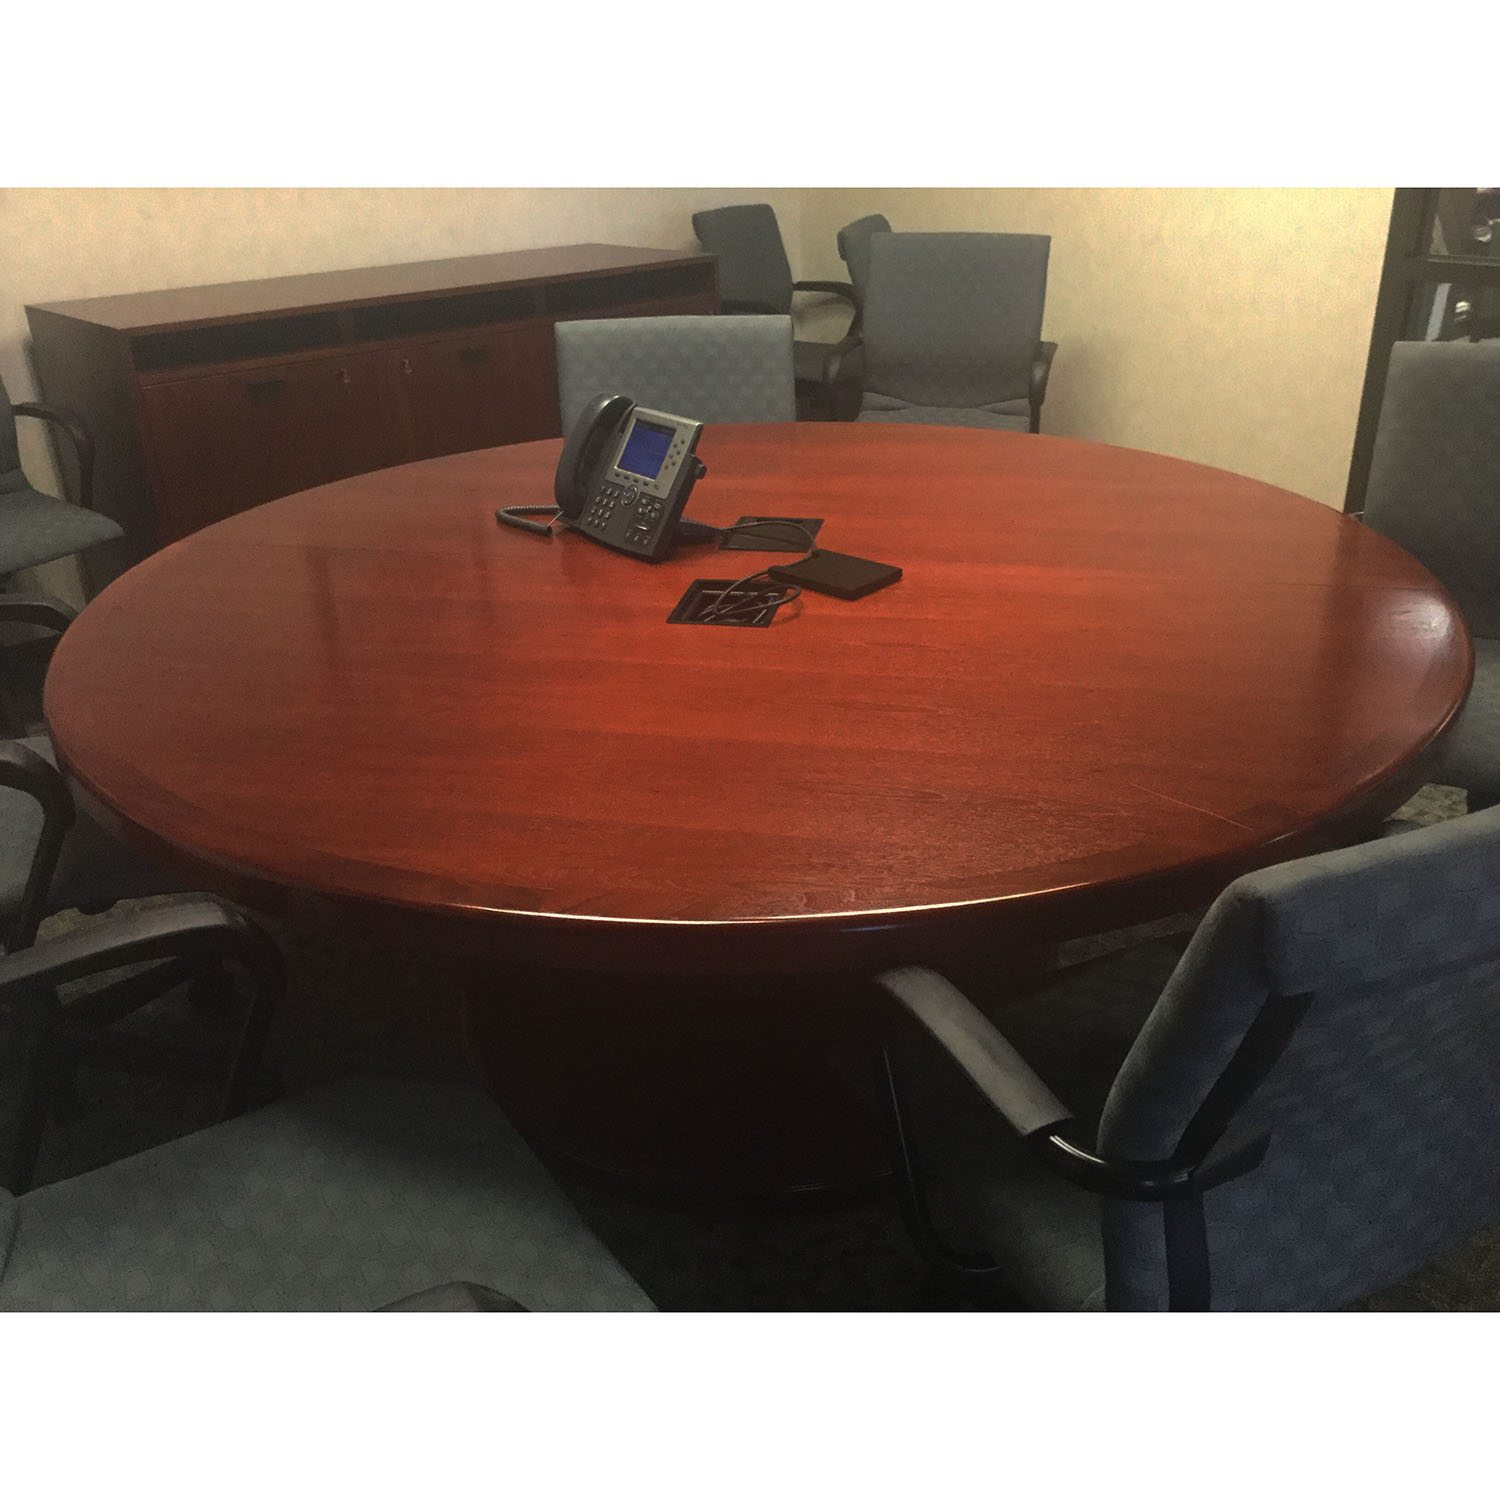 72 In X 1 516 In Heavy Duty Brushed Nickel Closet Pole: Steelcase Used 72 Inch Round Conference Table, Mahogany